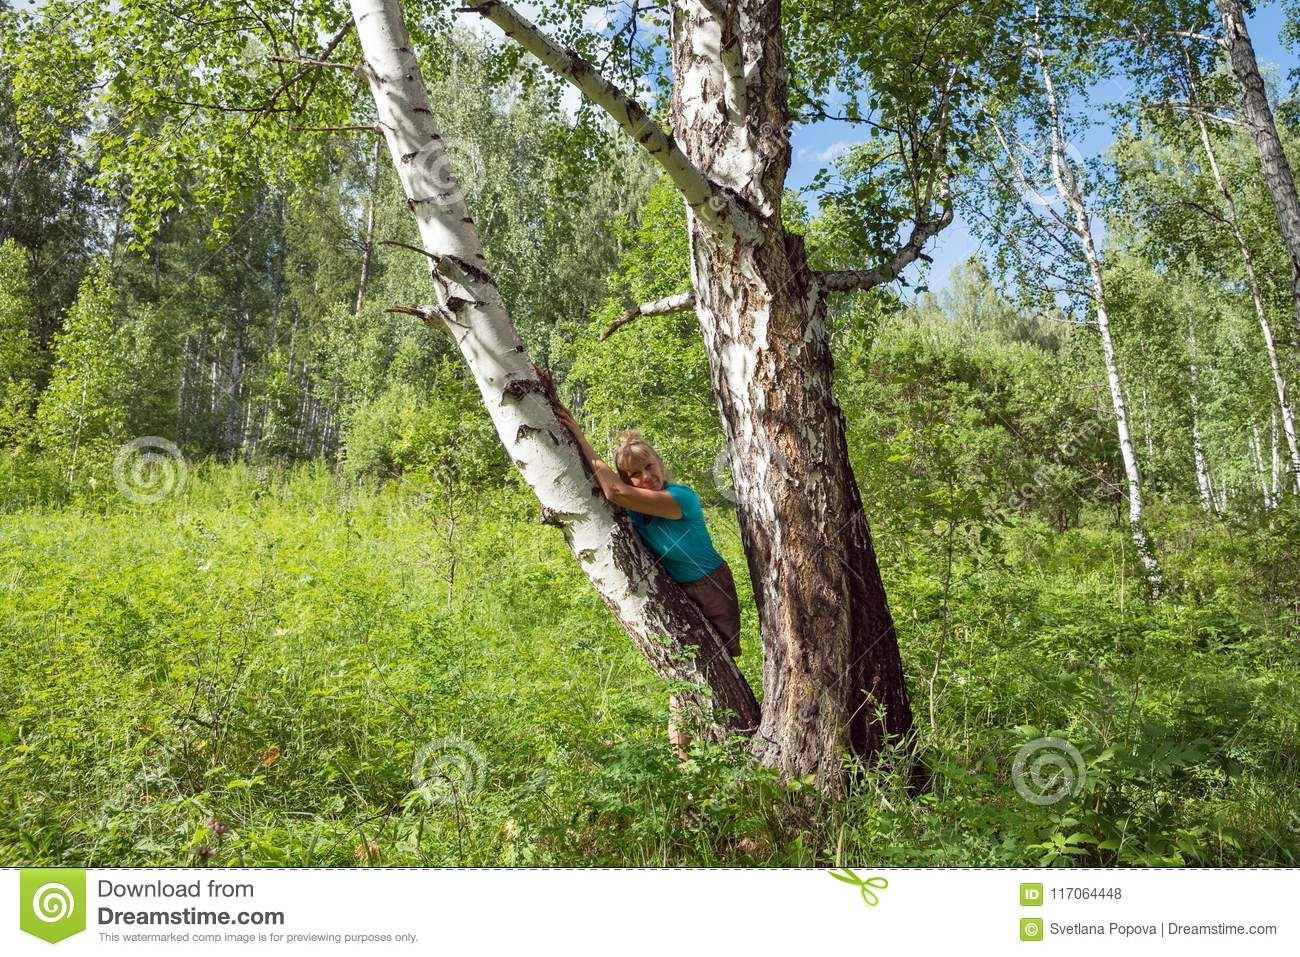 A middle-aged woman leaned against a birch tree in the forest.